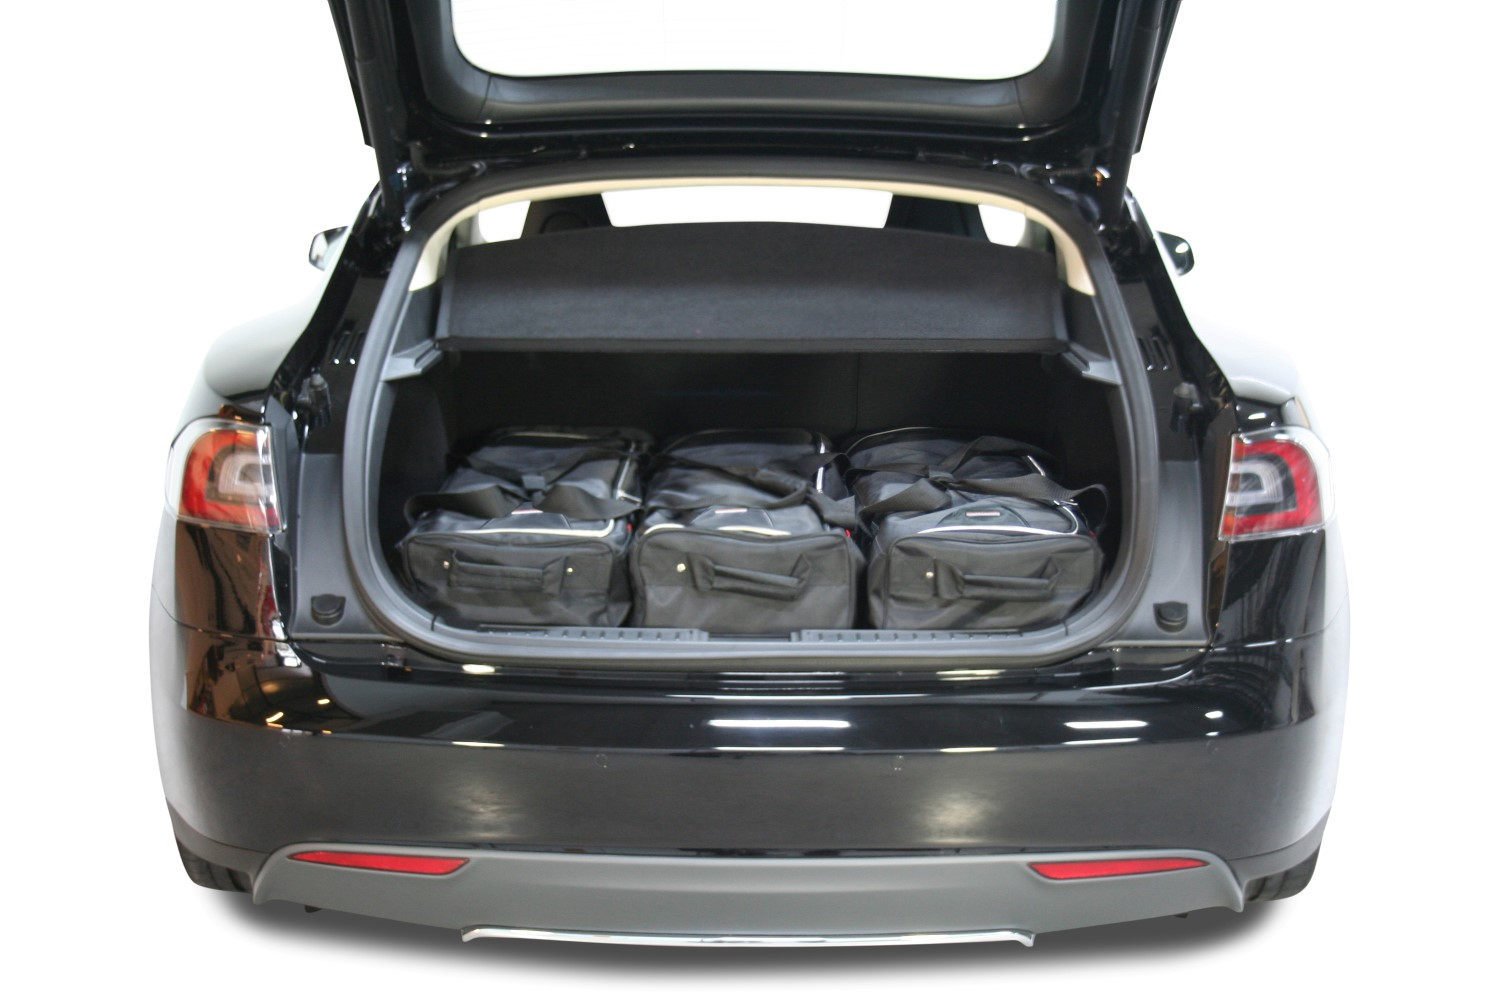 car bags tesla model s reisetaschen set ab 2012 3x82l. Black Bedroom Furniture Sets. Home Design Ideas